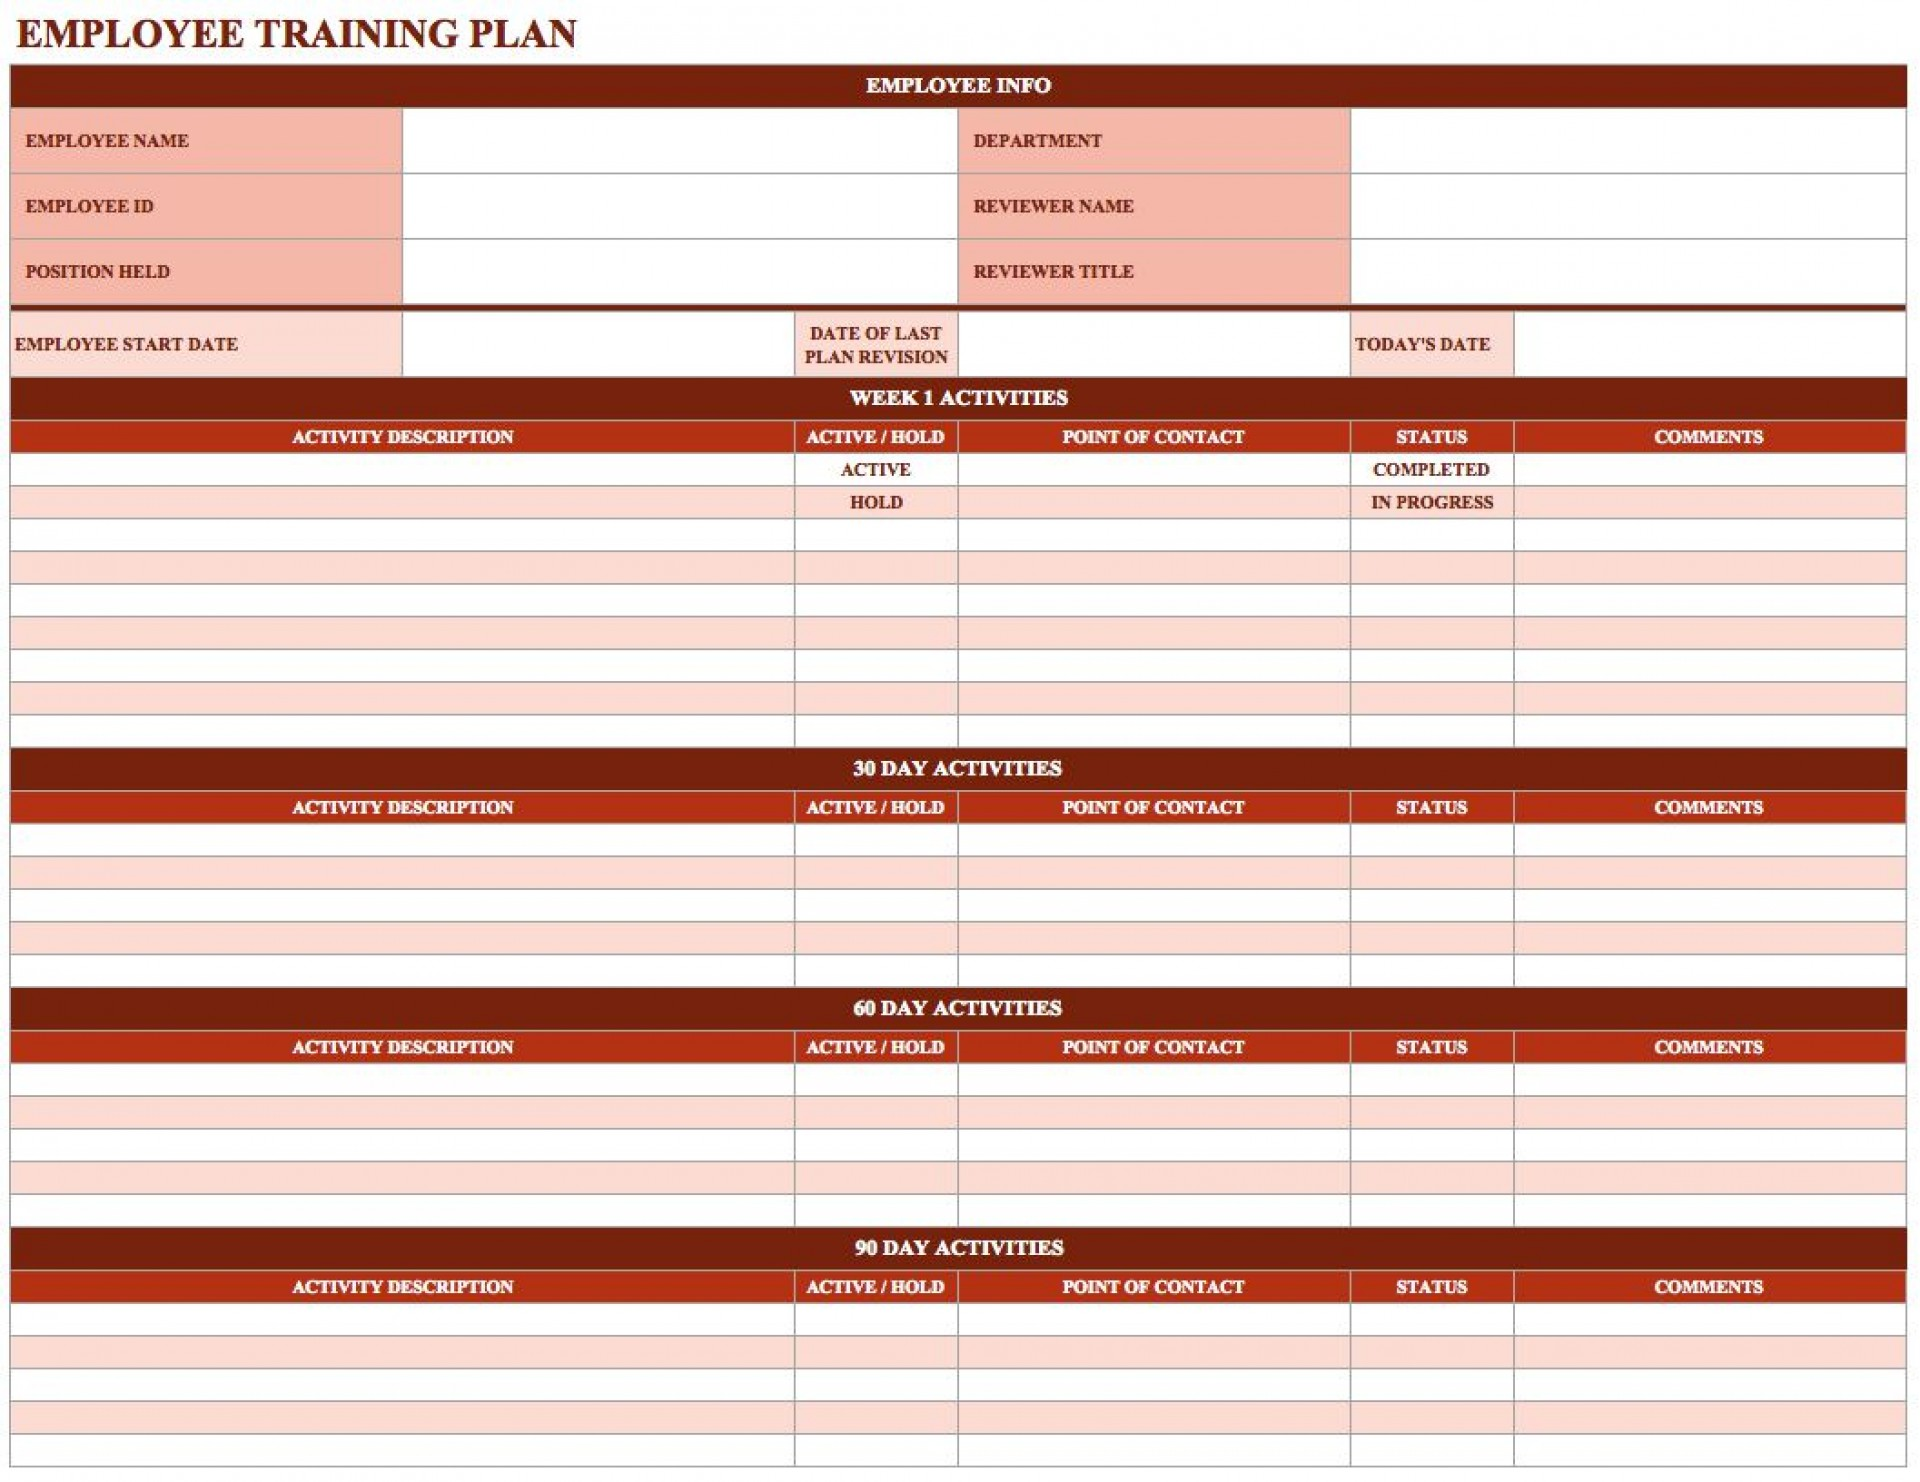 001 Fascinating Employee Training Plan Template Excel Picture  Free Download Staff Schedule1920